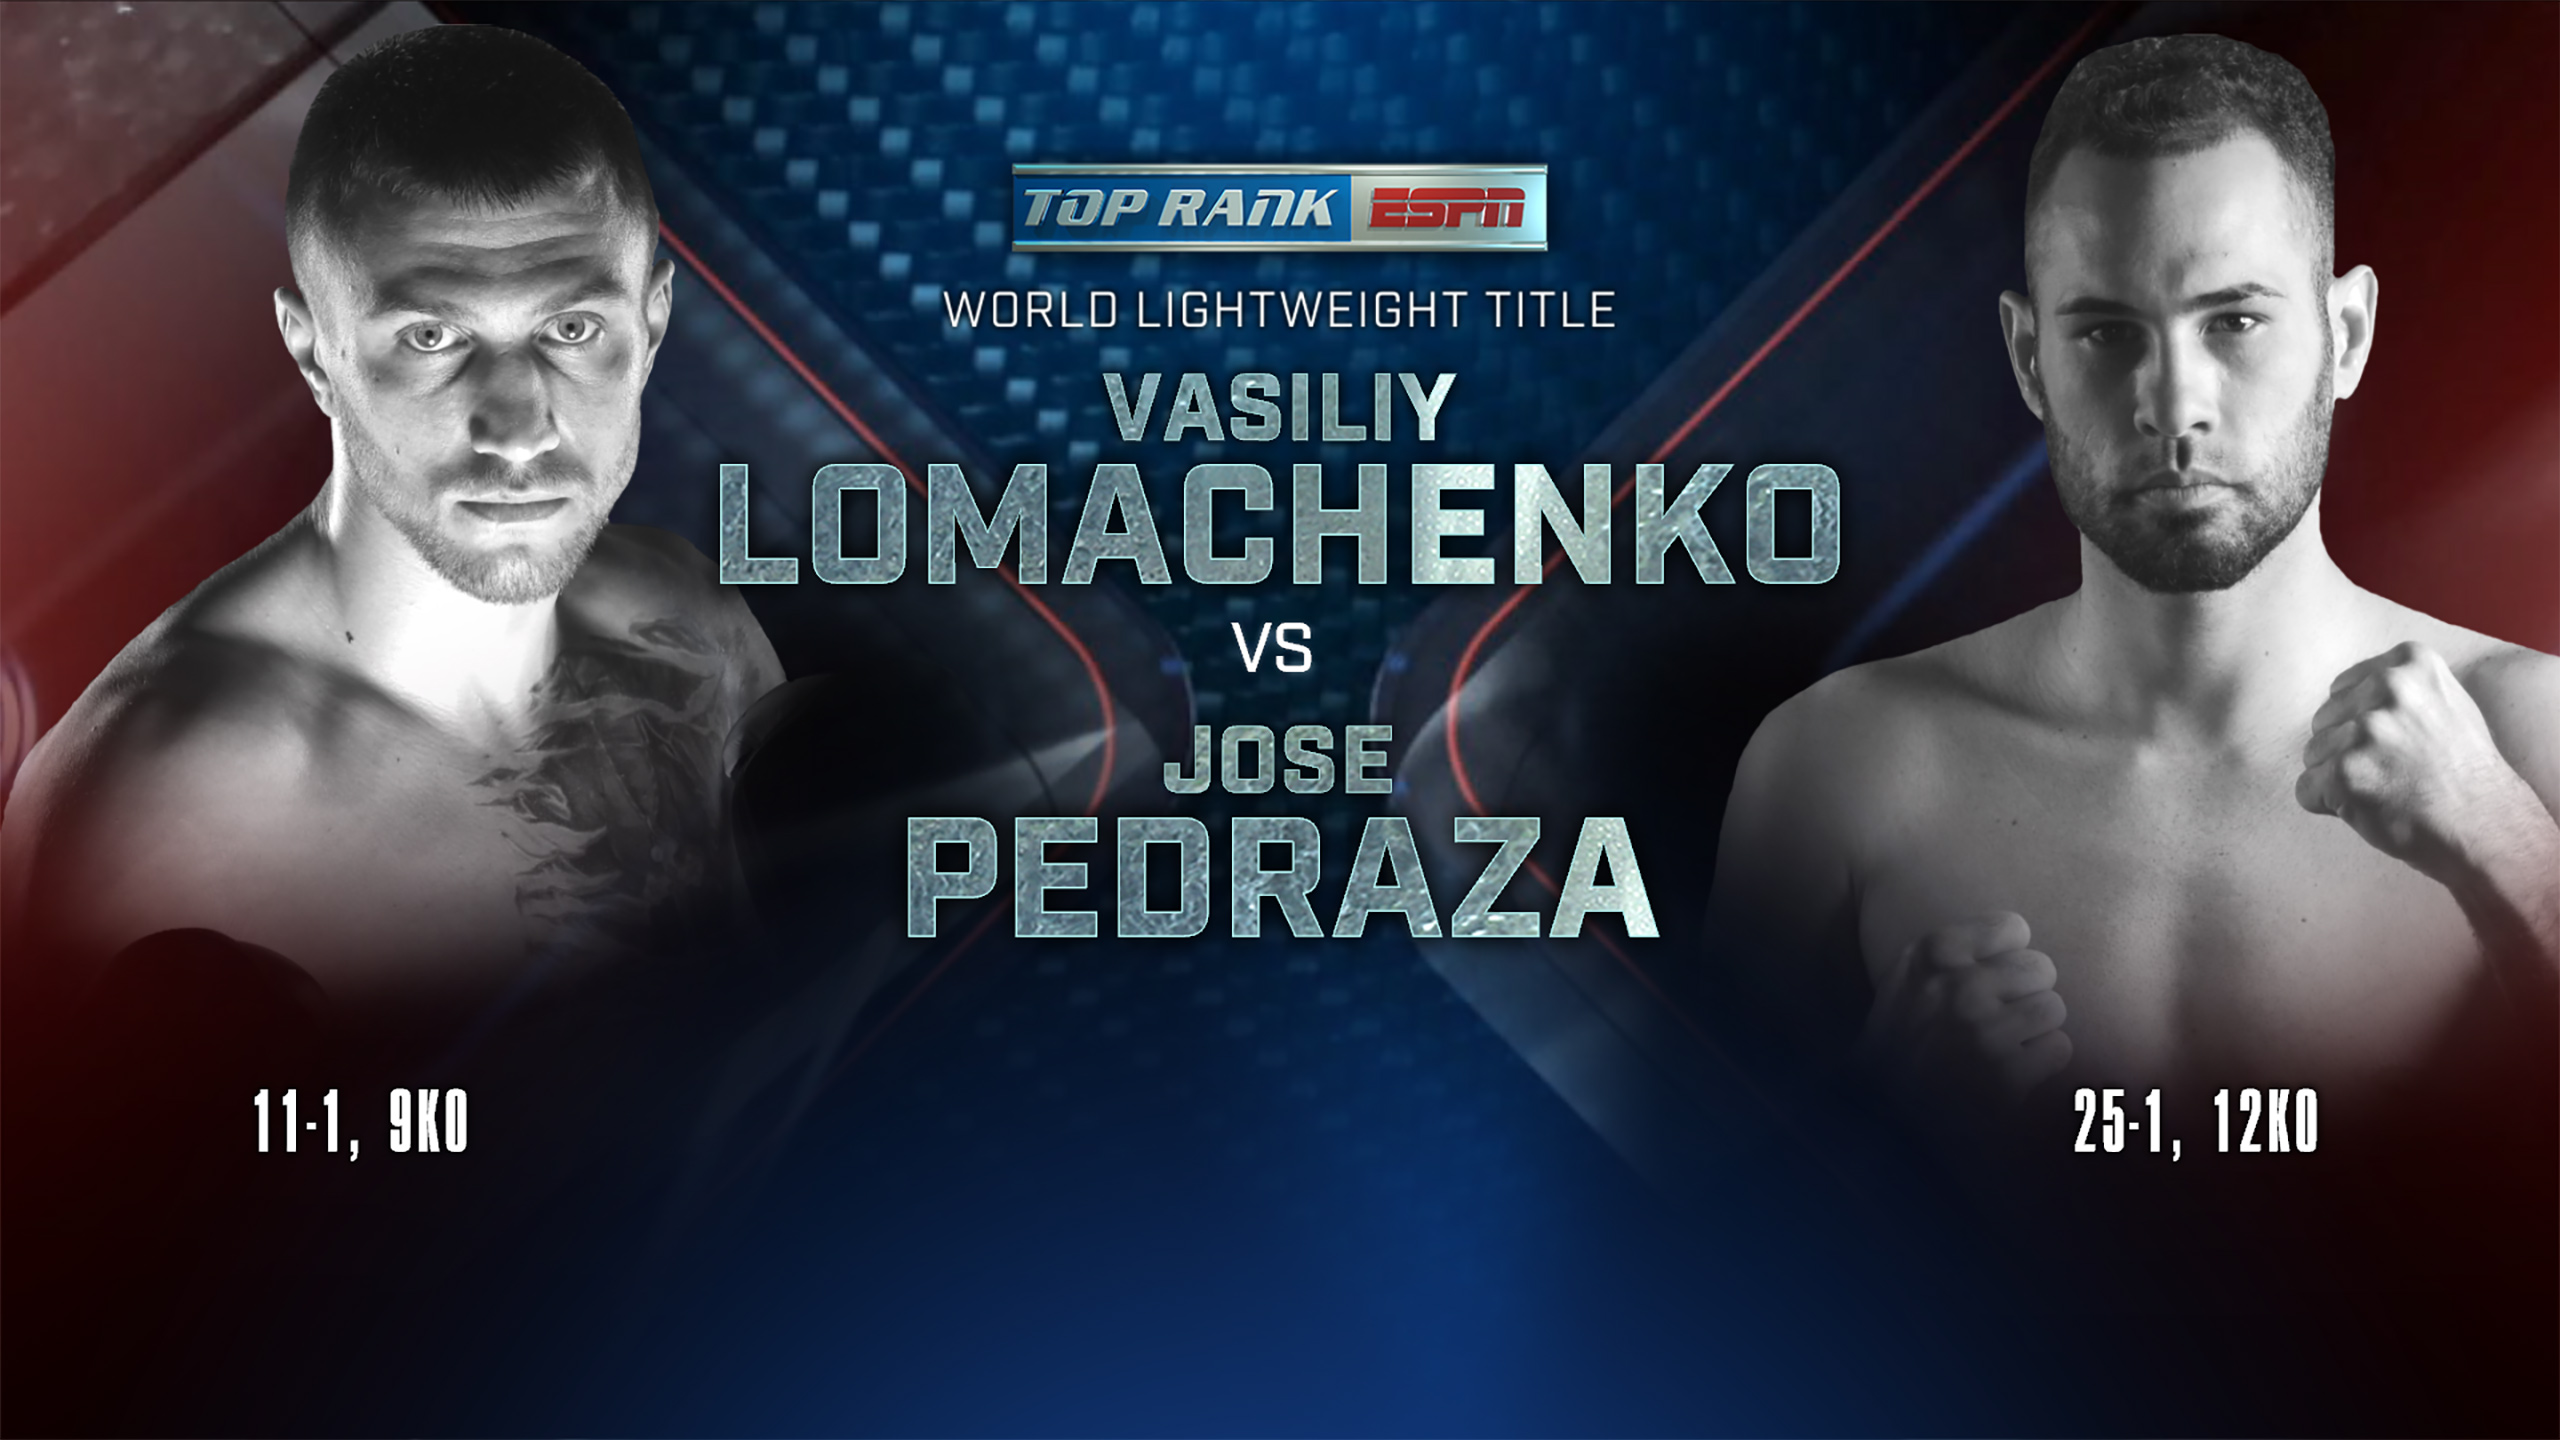 Vasiliy Lomachenko vs. Jose Pedraza (re-air)